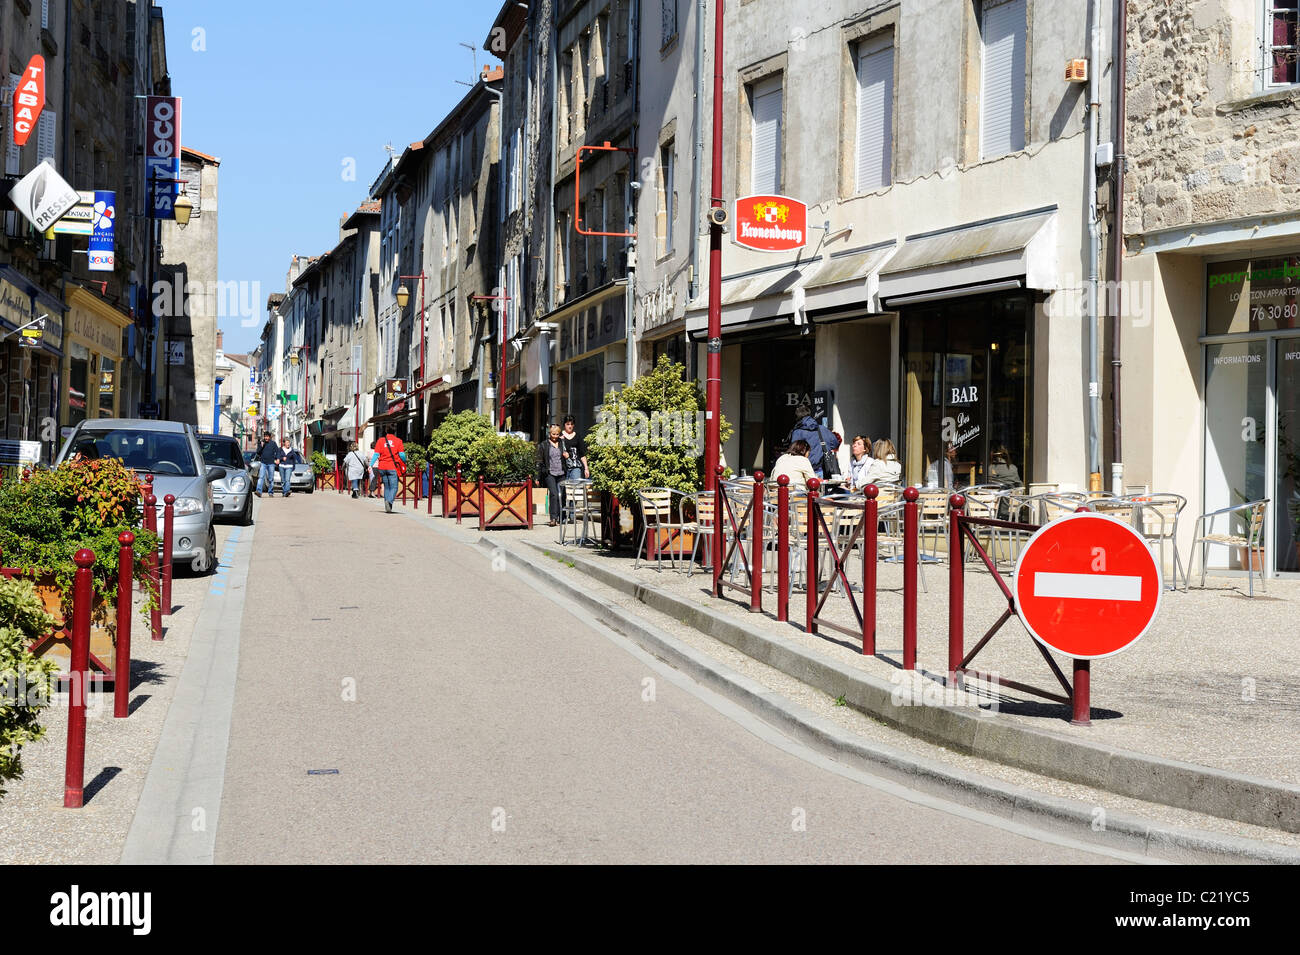 stock photo of st junien in the limousin france stock photo 35693509 alamy. Black Bedroom Furniture Sets. Home Design Ideas